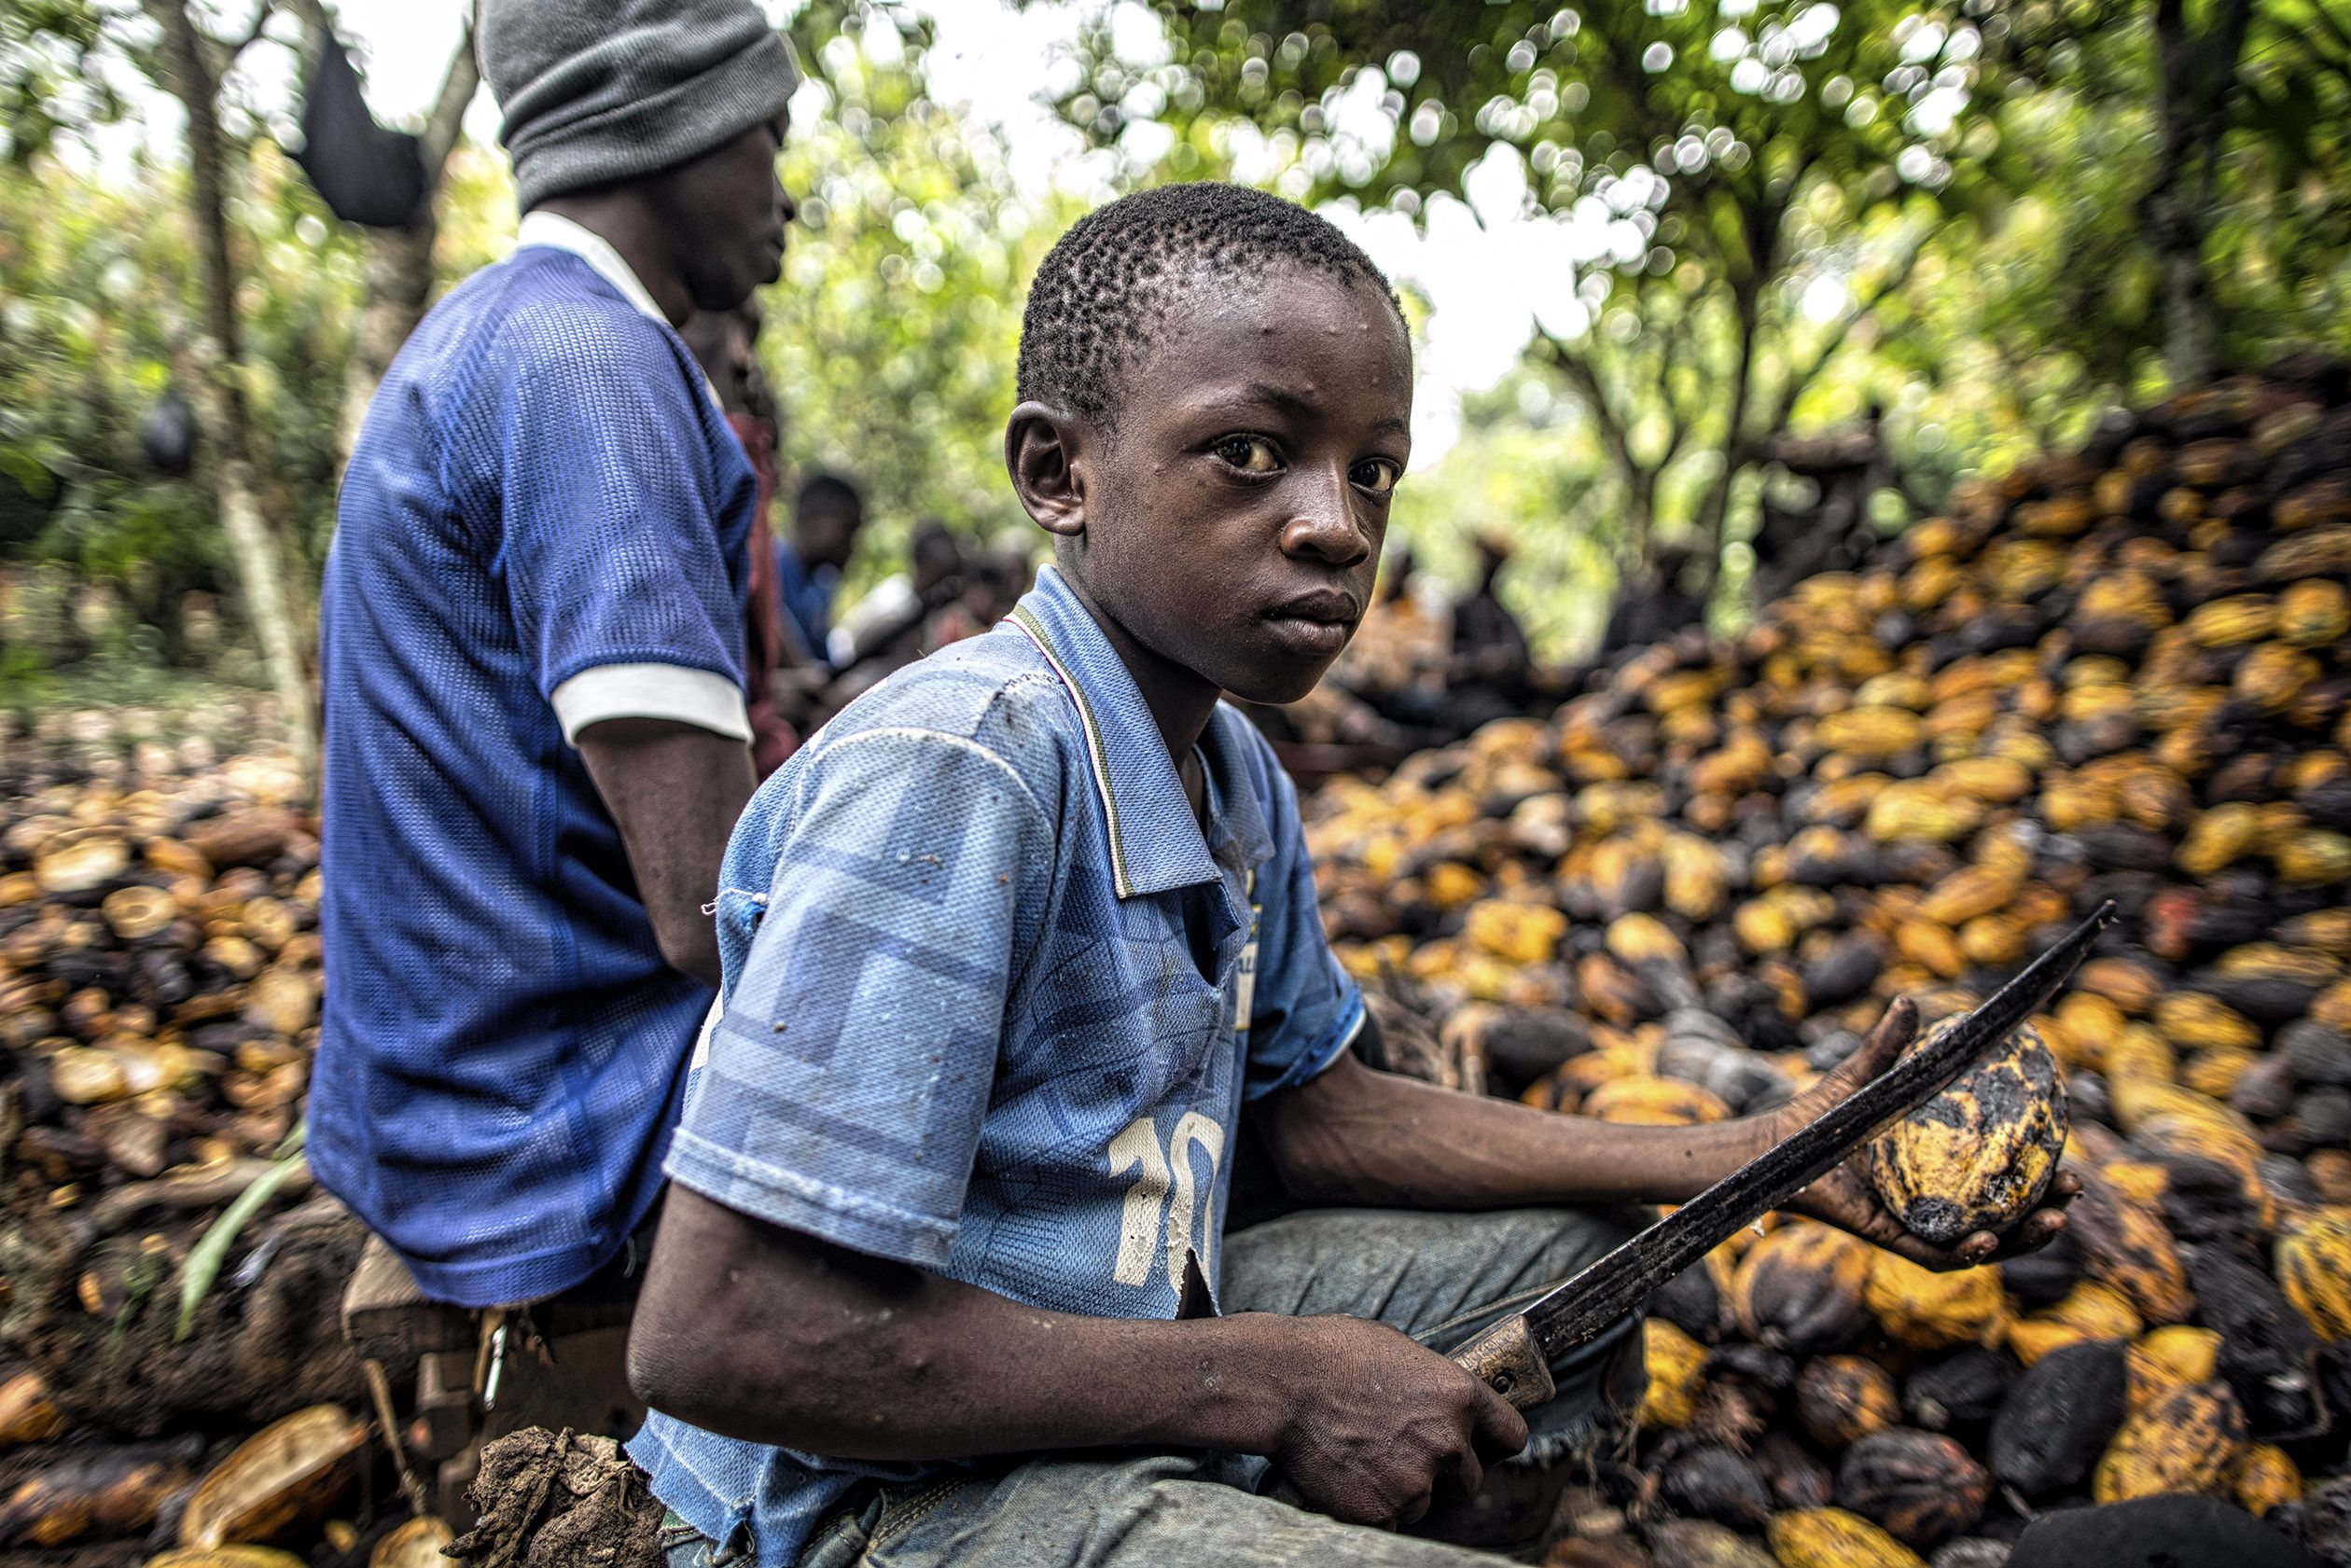 Ghana Child labour